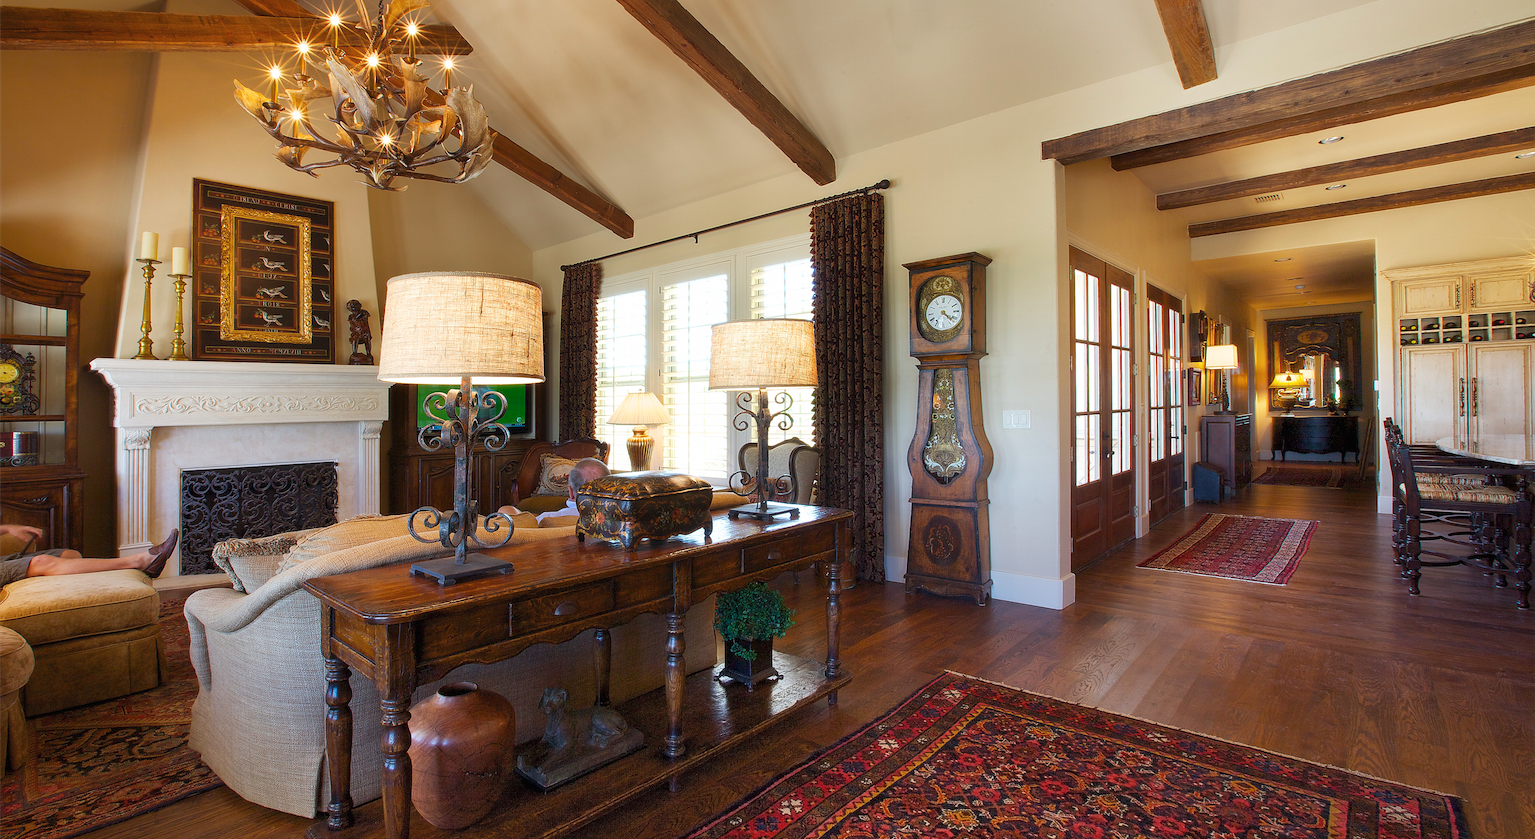 Town Creek, Braunfels, Texas, home interior